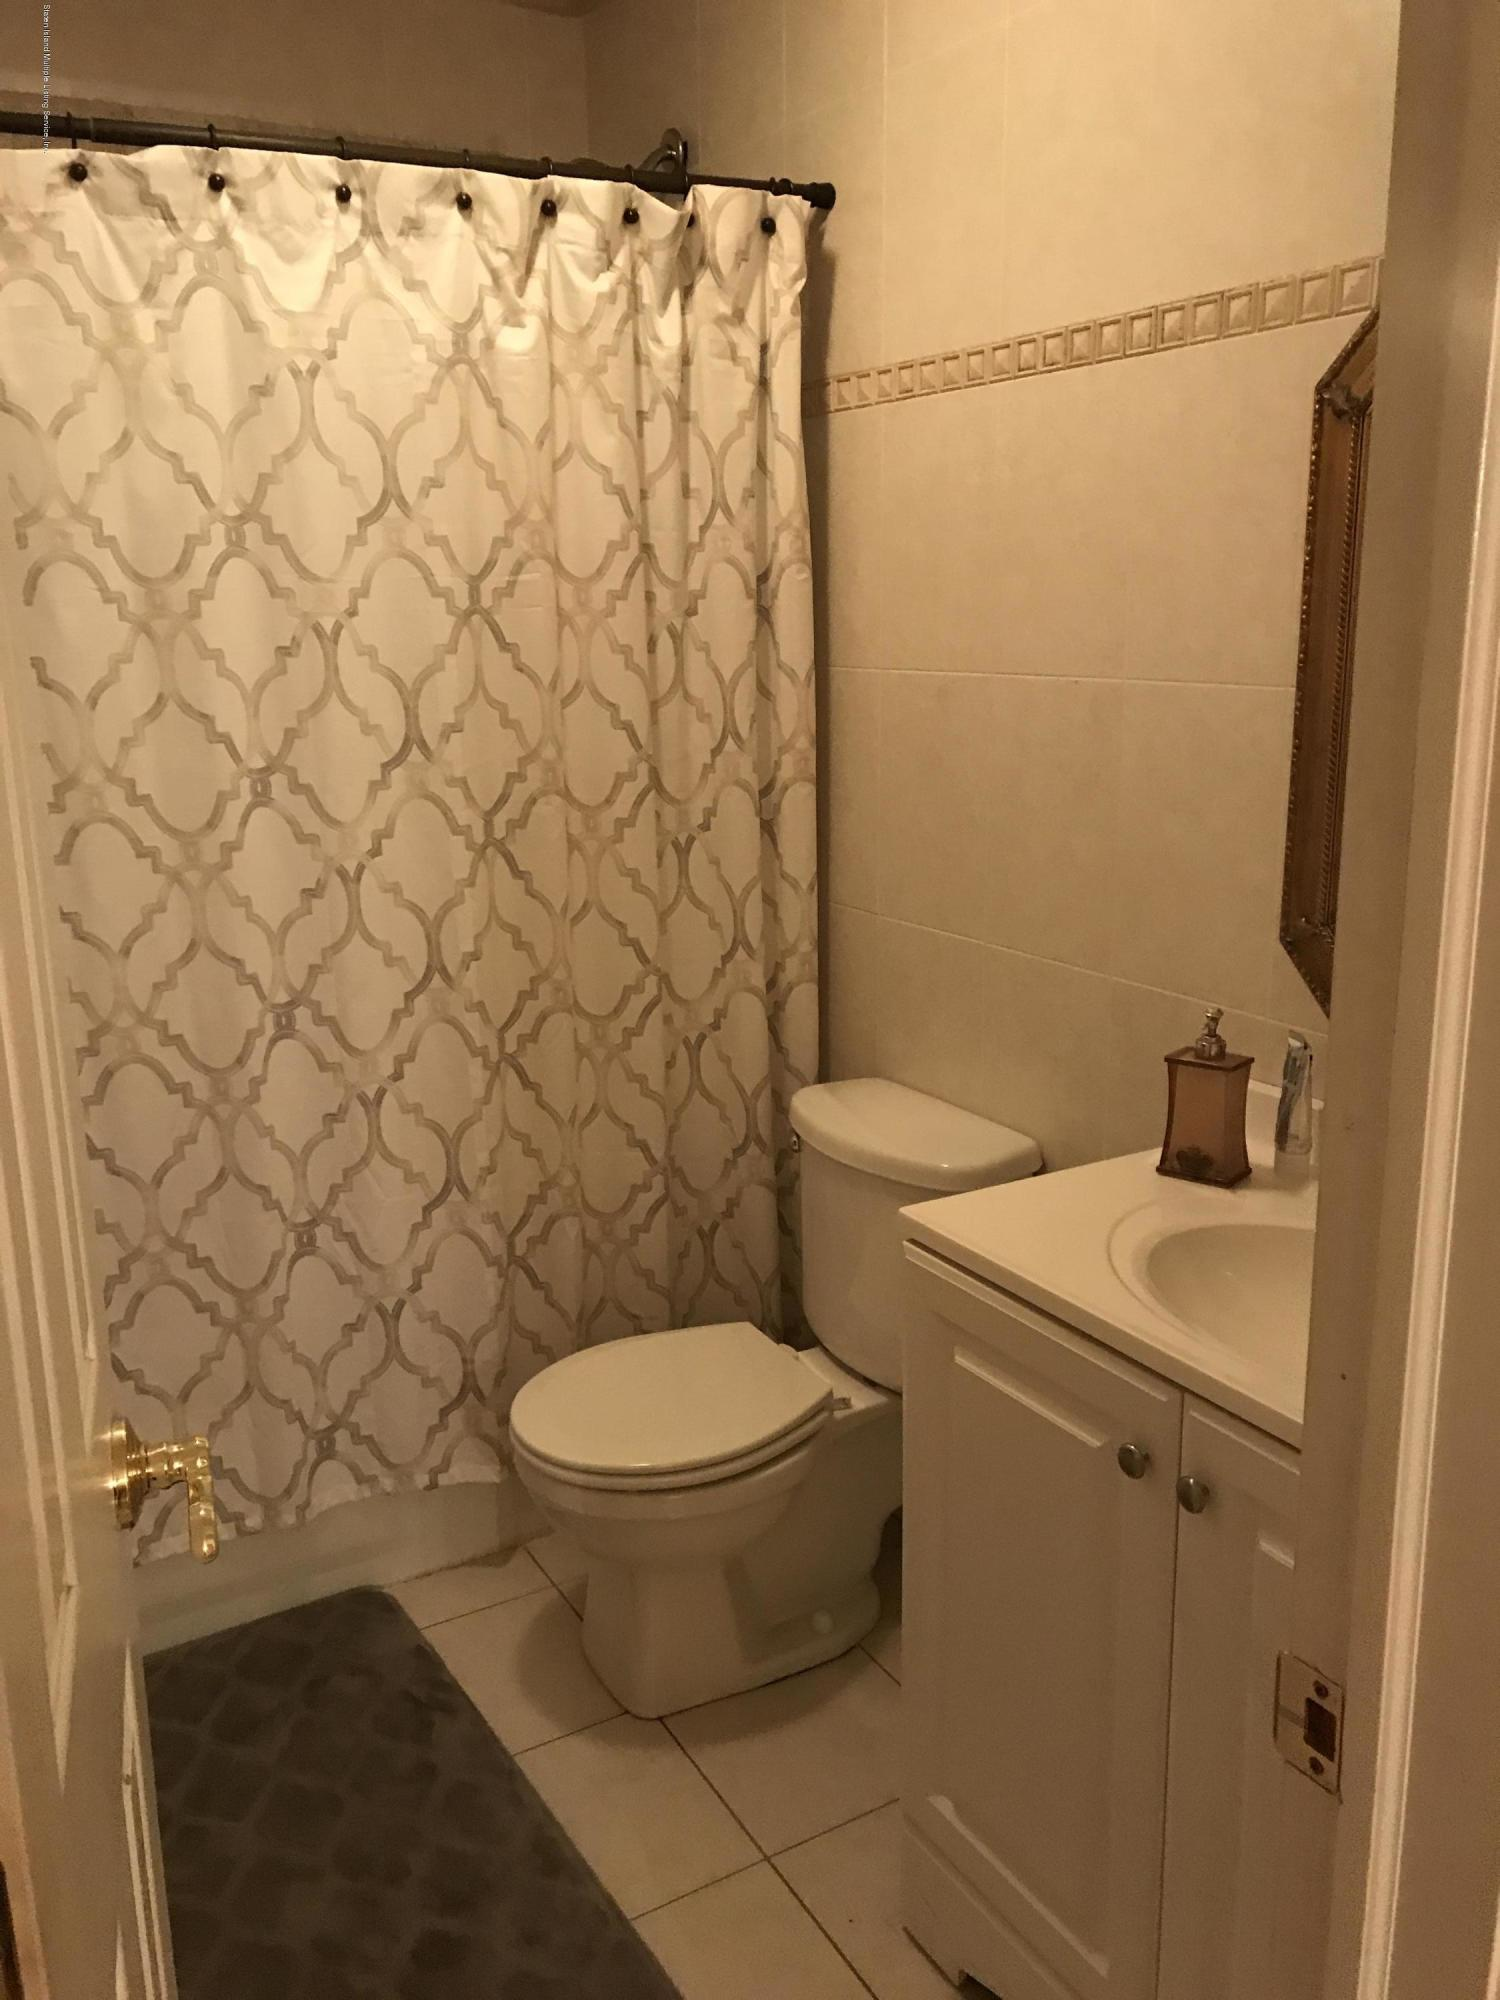 Single Family - Detached 20 Gabrielle Court  Staten Island, NY 10312, MLS-1123867-14